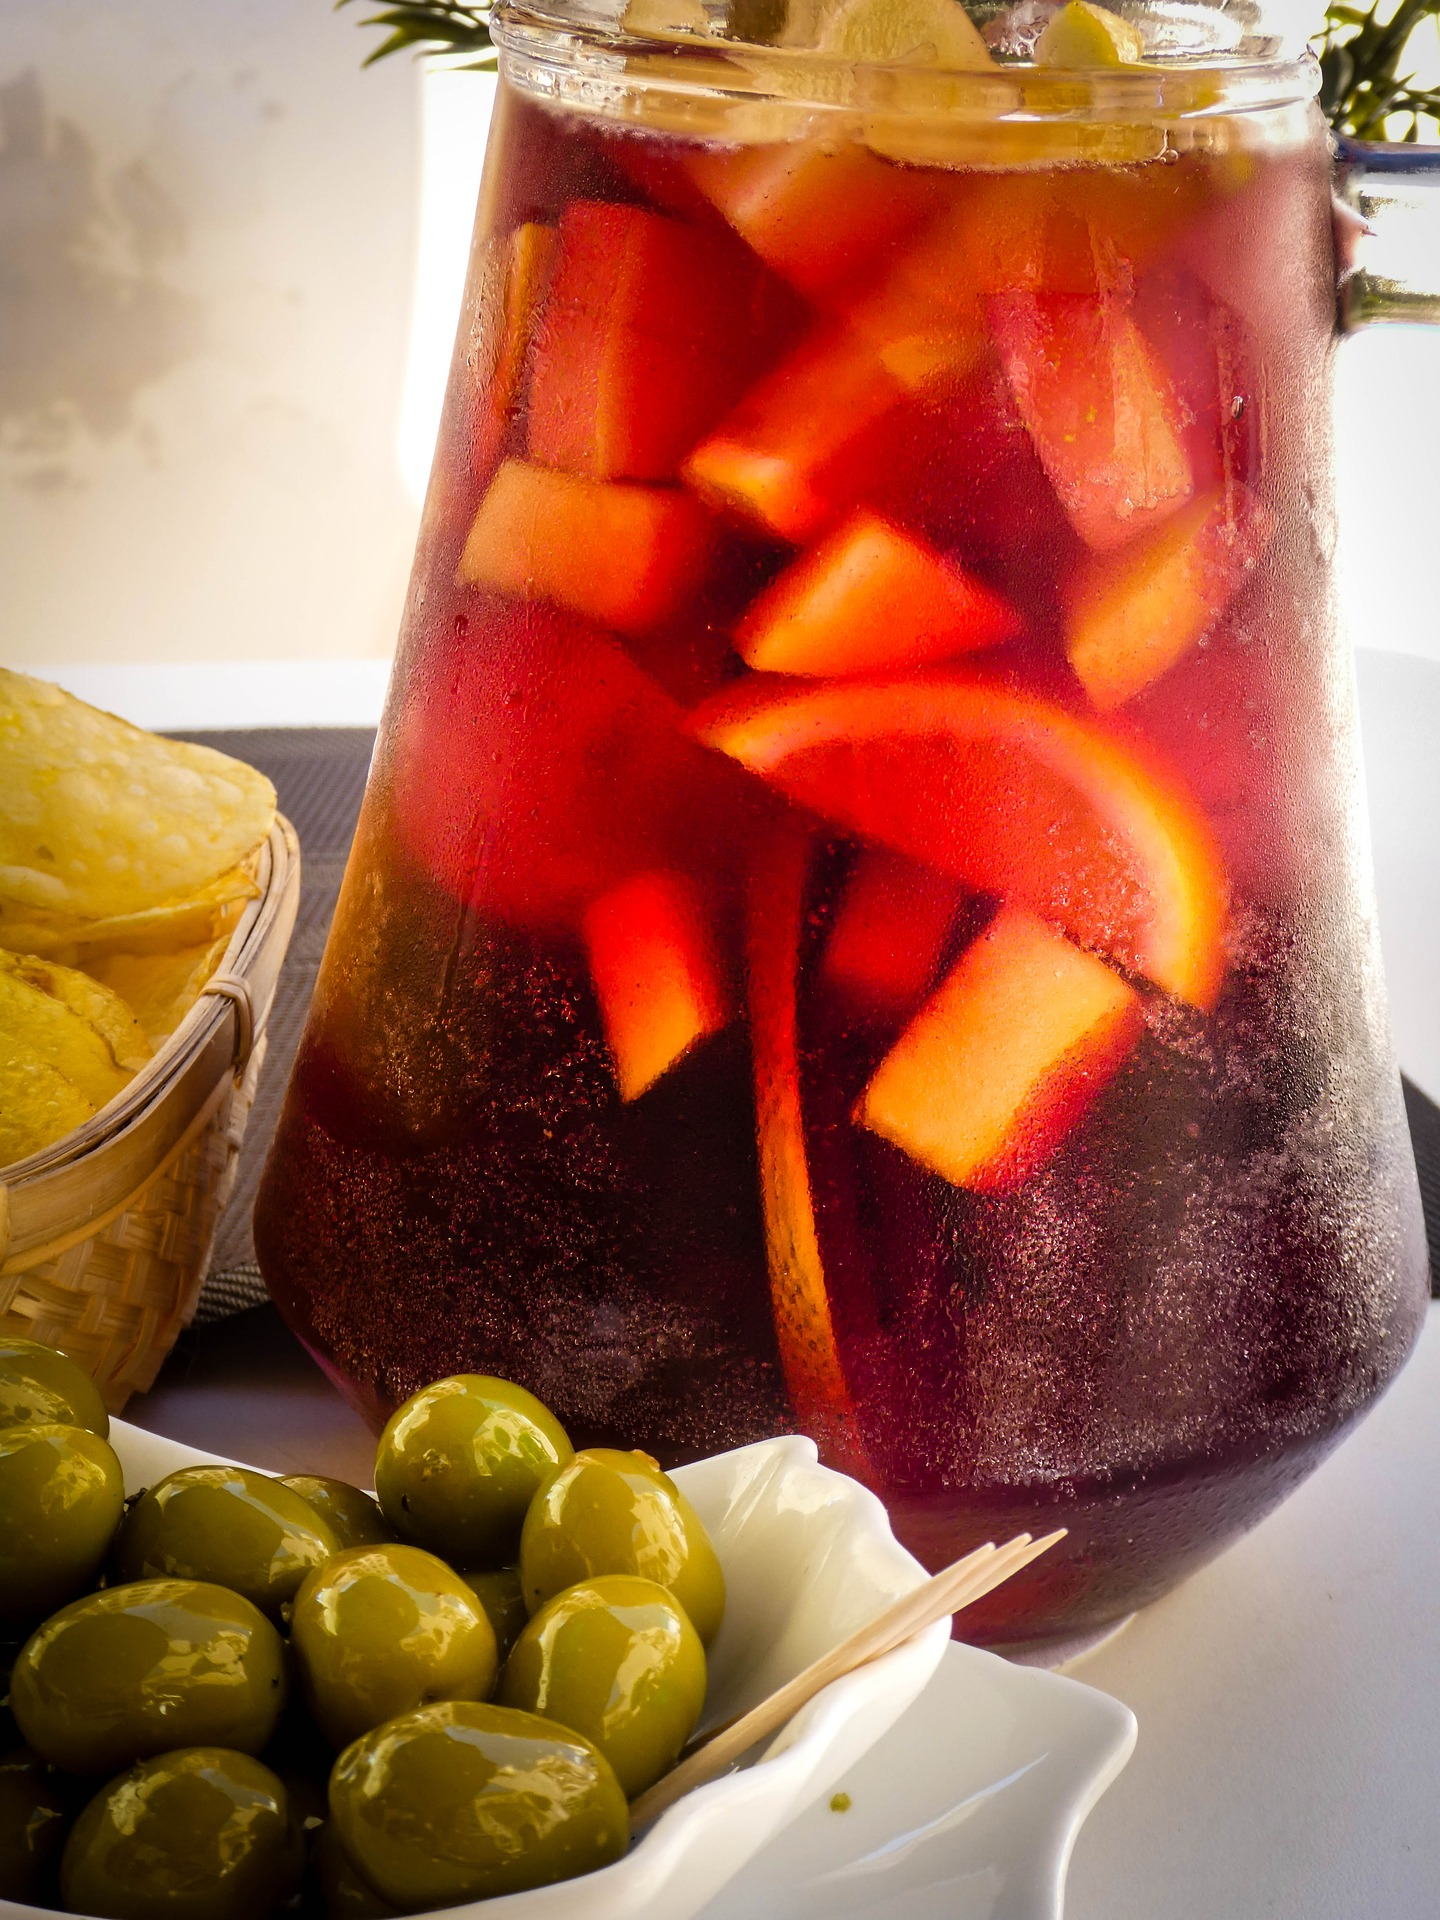 Easy red sangria recipe for summer